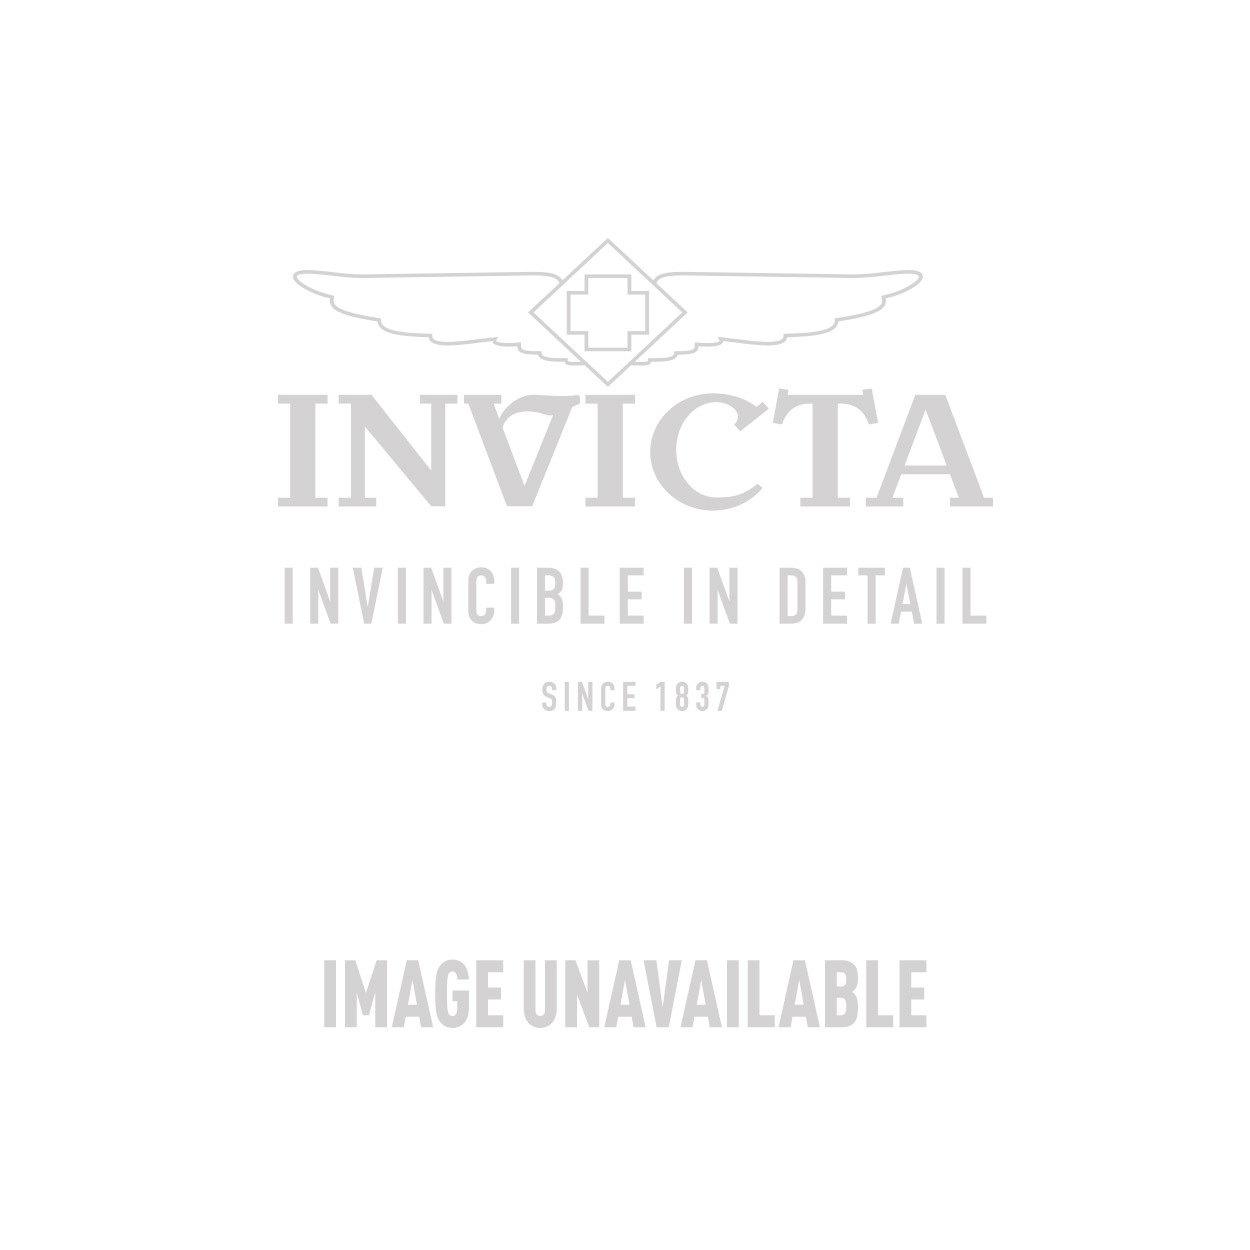 Invicta Reserve Swiss Made Quartz Watch - Rose Gold case with Brown tone Leather band - Model 19753